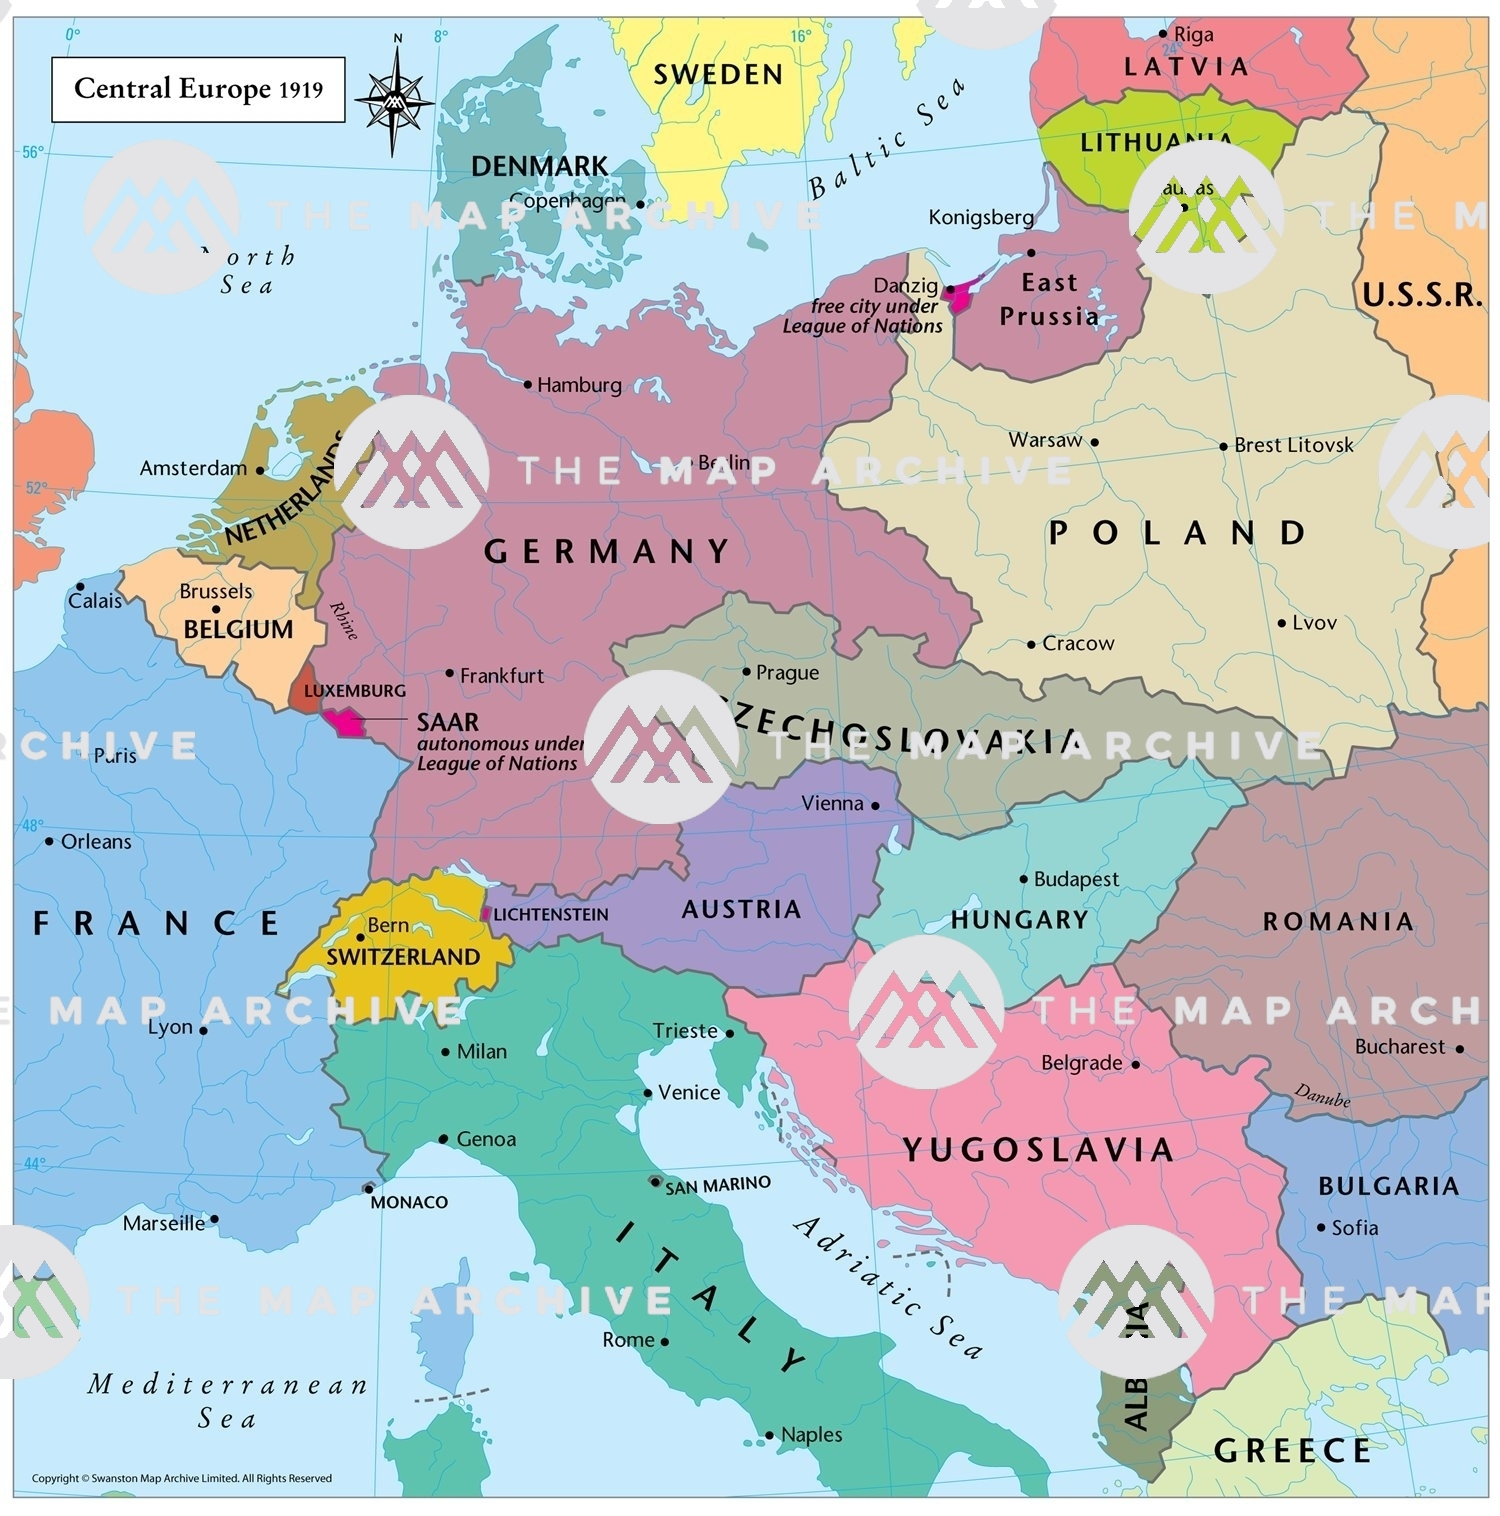 Picture of: Central Europe 1919